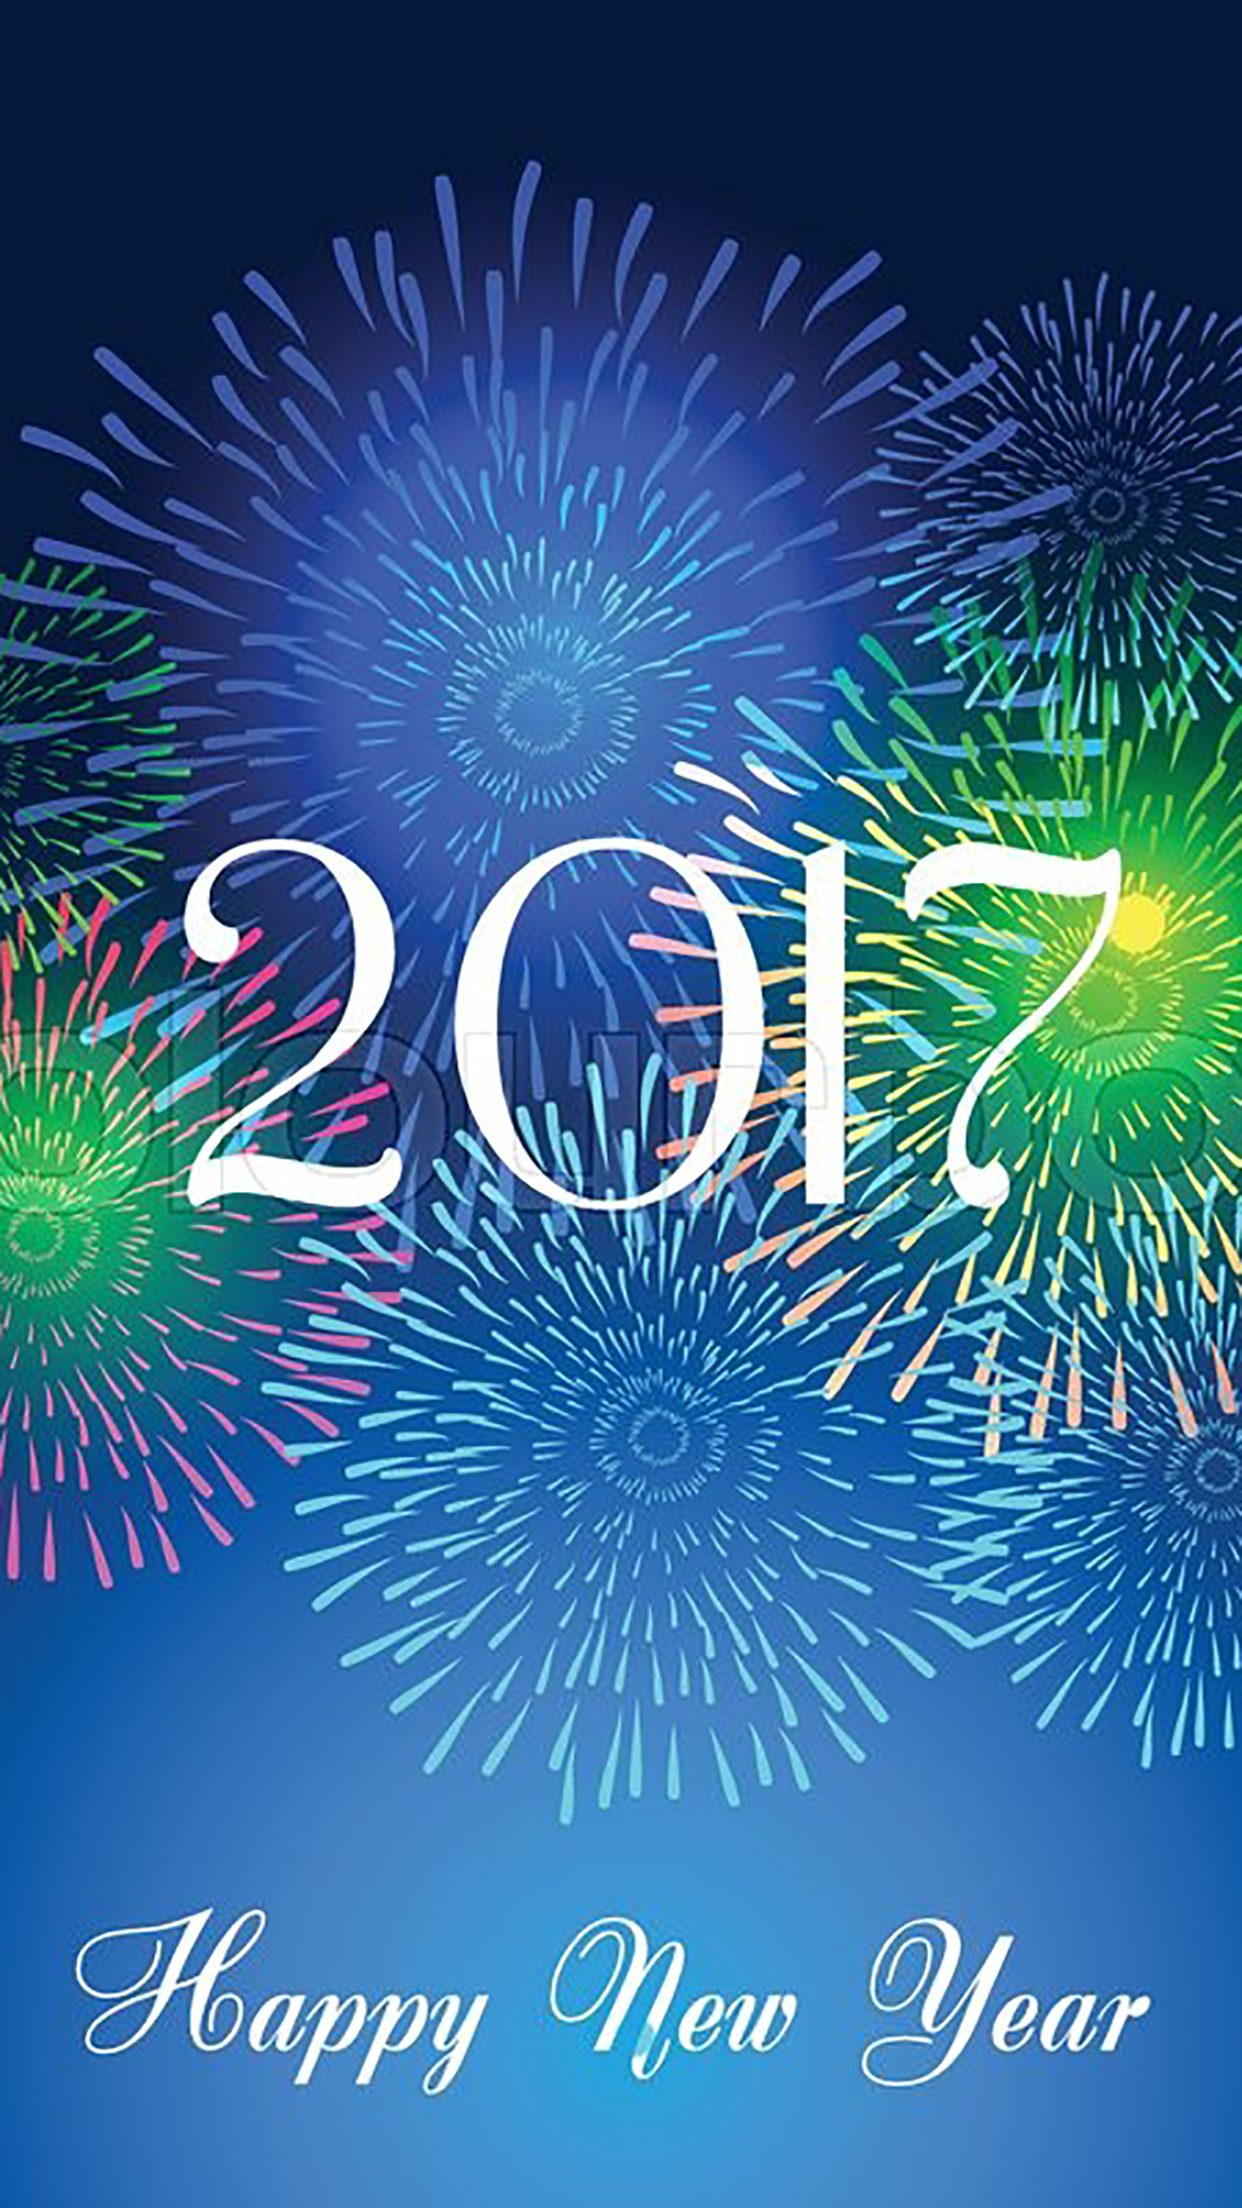 Happy New Year 2017 Wallpaper For Iphone X 8 7 6 Free